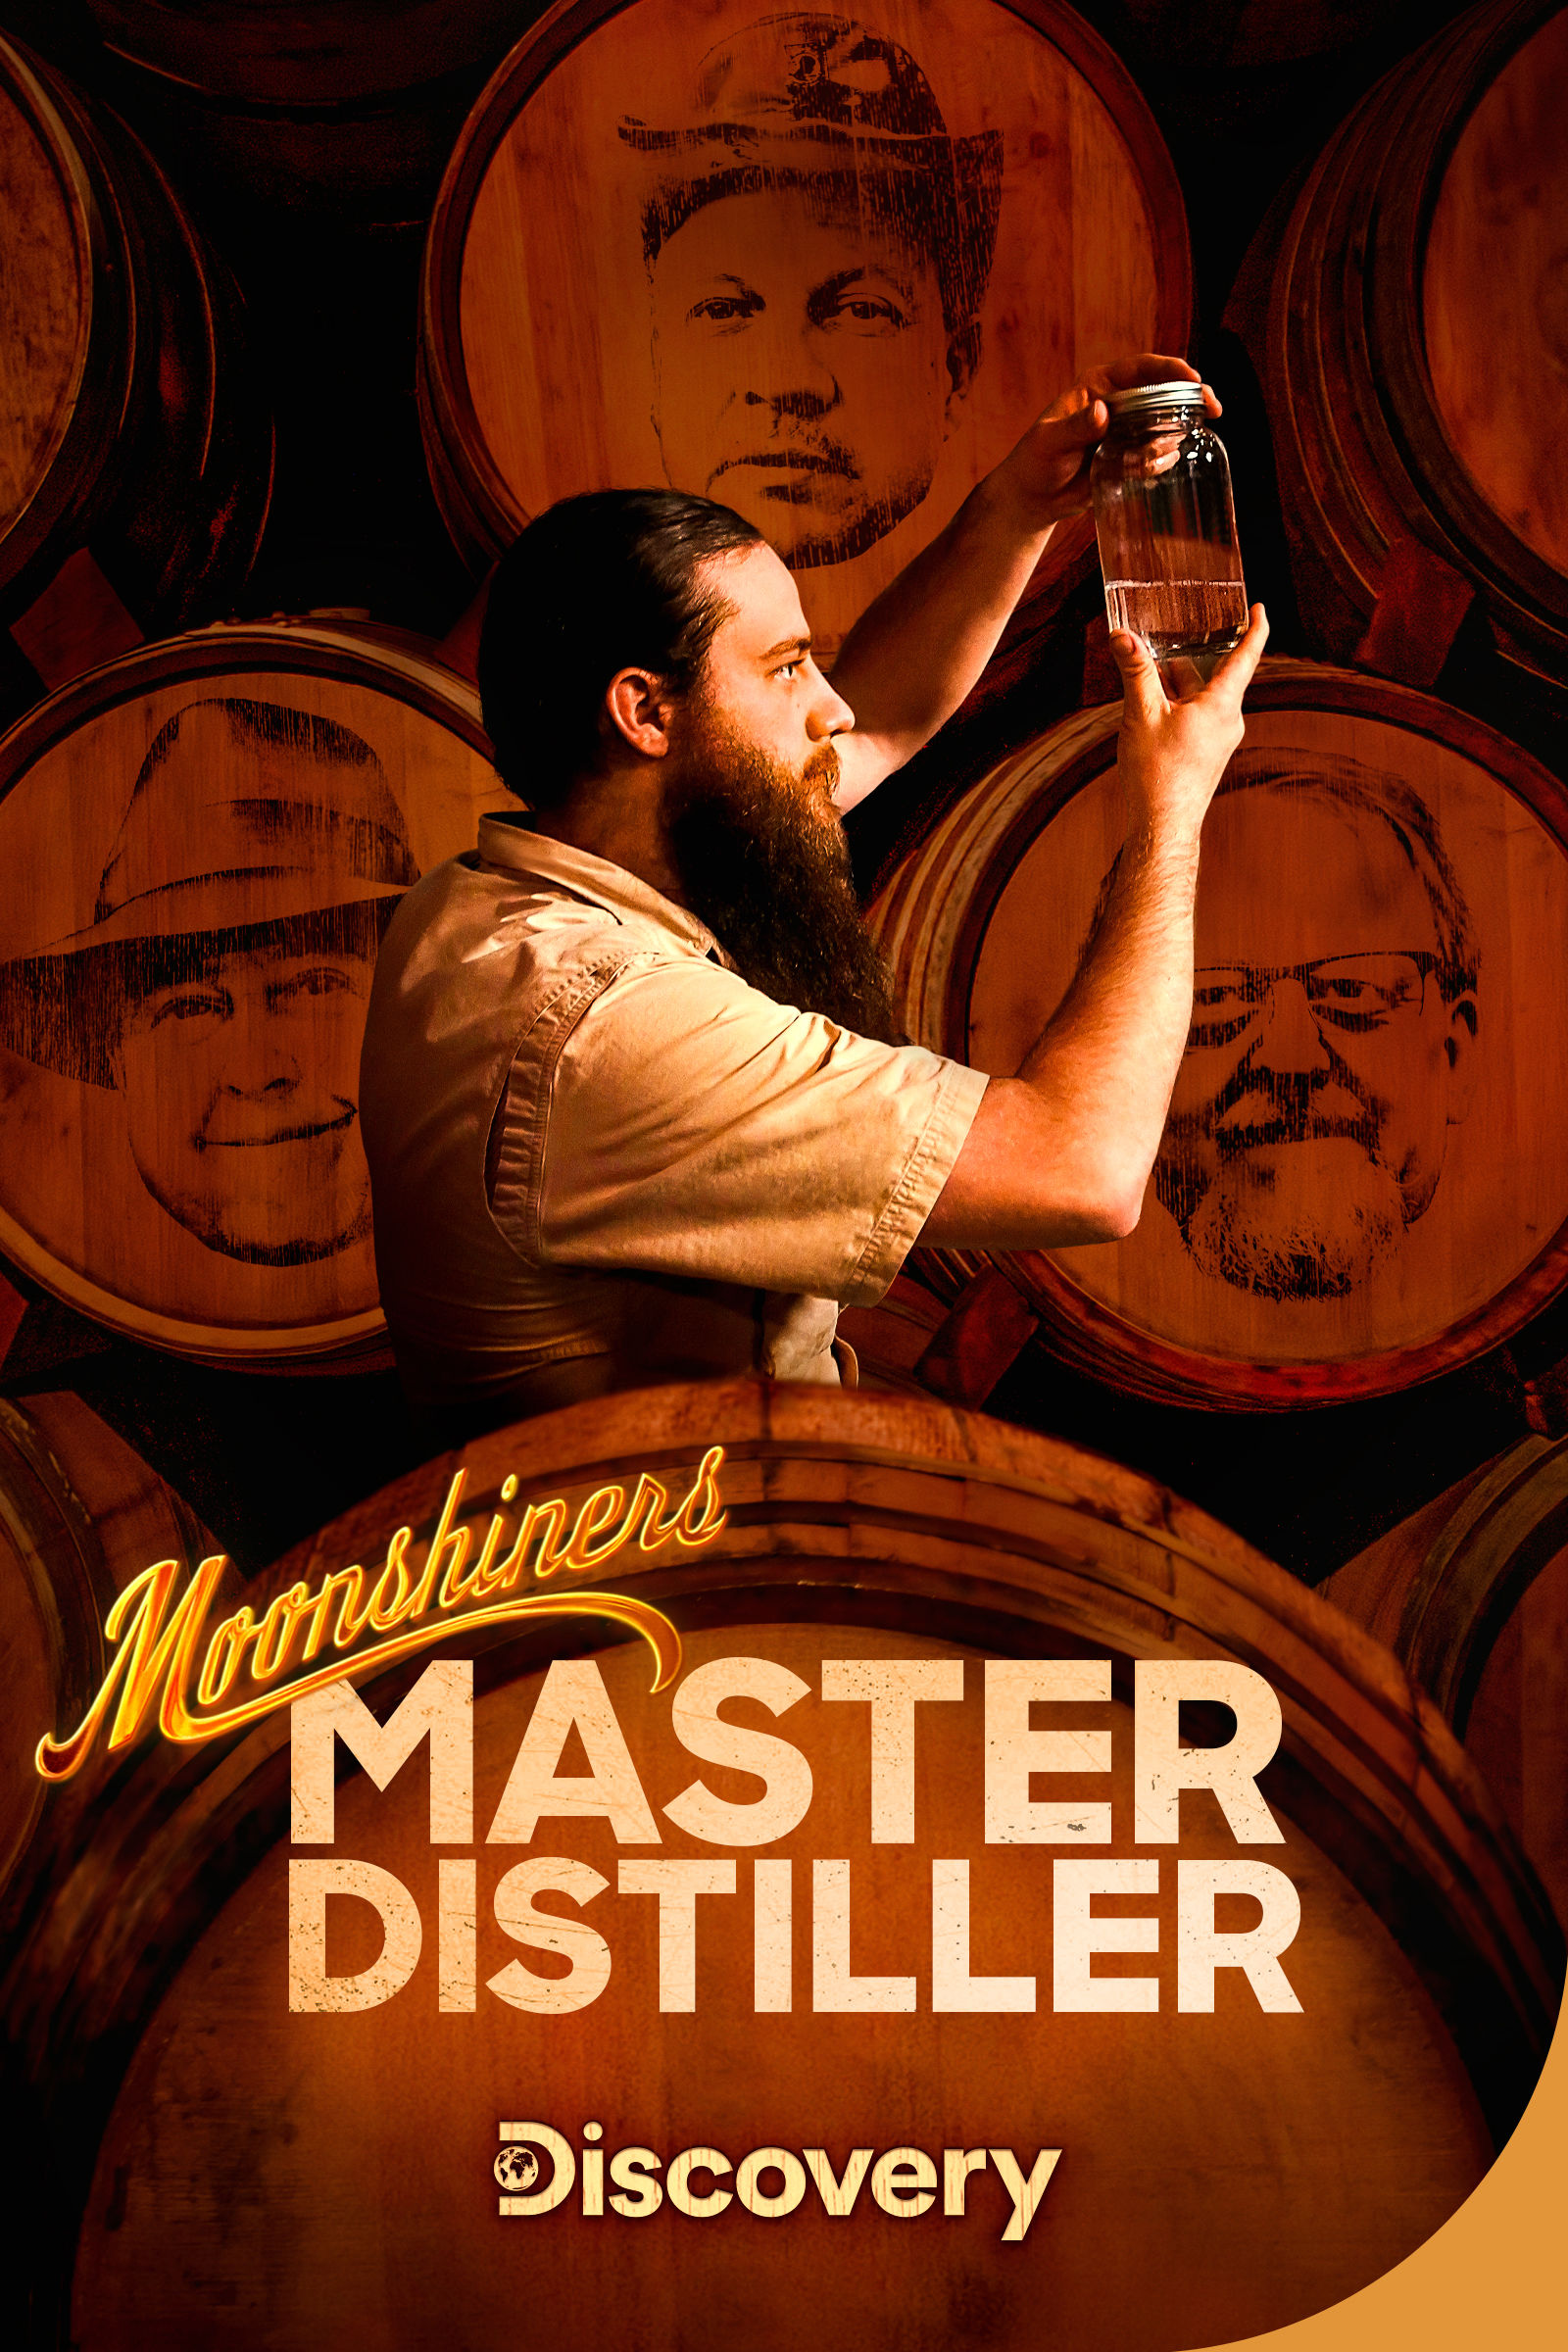 Master Distiller Season 2 Episode 3 - Navy Strength Rum